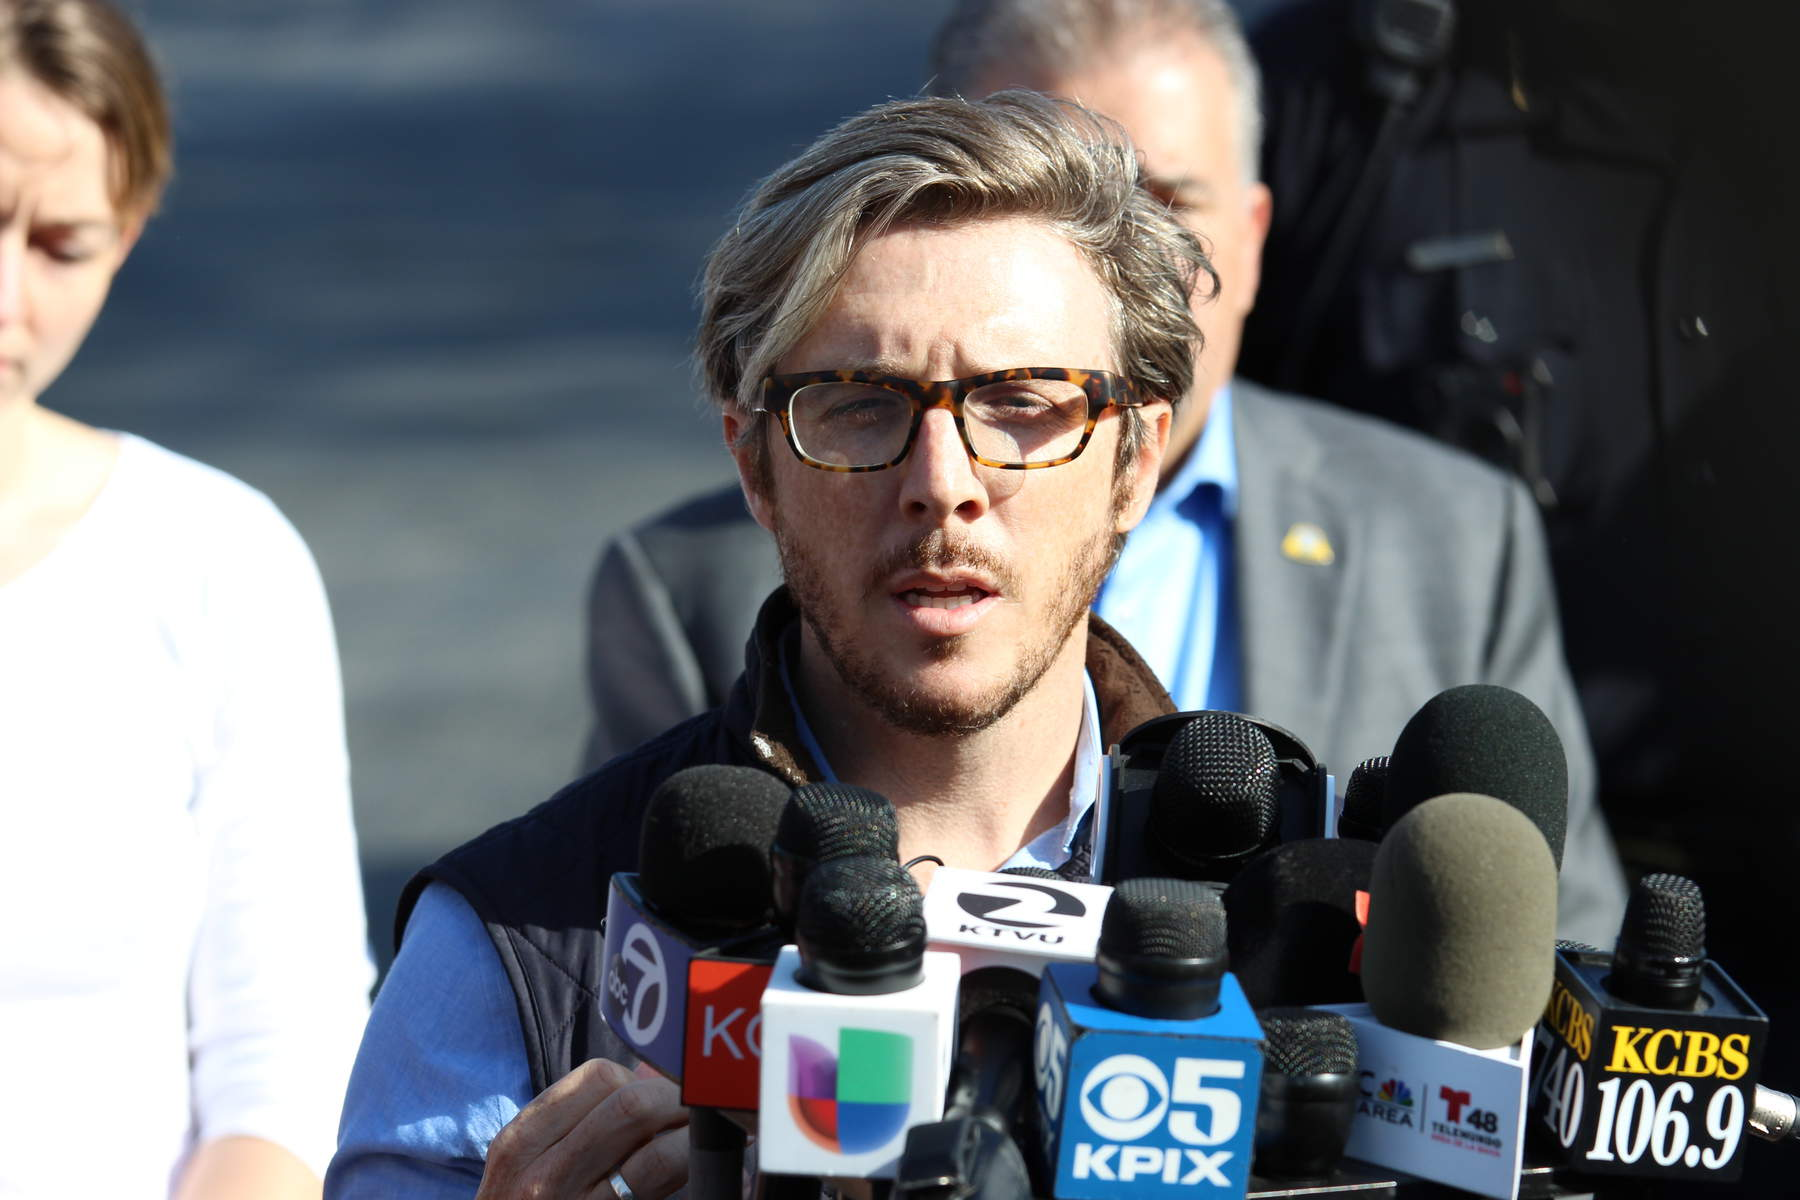 Chris Dale, head of communications for YouTube, delivers a statement from the company about the shooting on Tuesday, April 3, 2018. Three people were hospitalized from gunshot wounds. A shooting suspect died from a self-inflicted gunshot wound. (Anthony Miller/Peninsula Press)